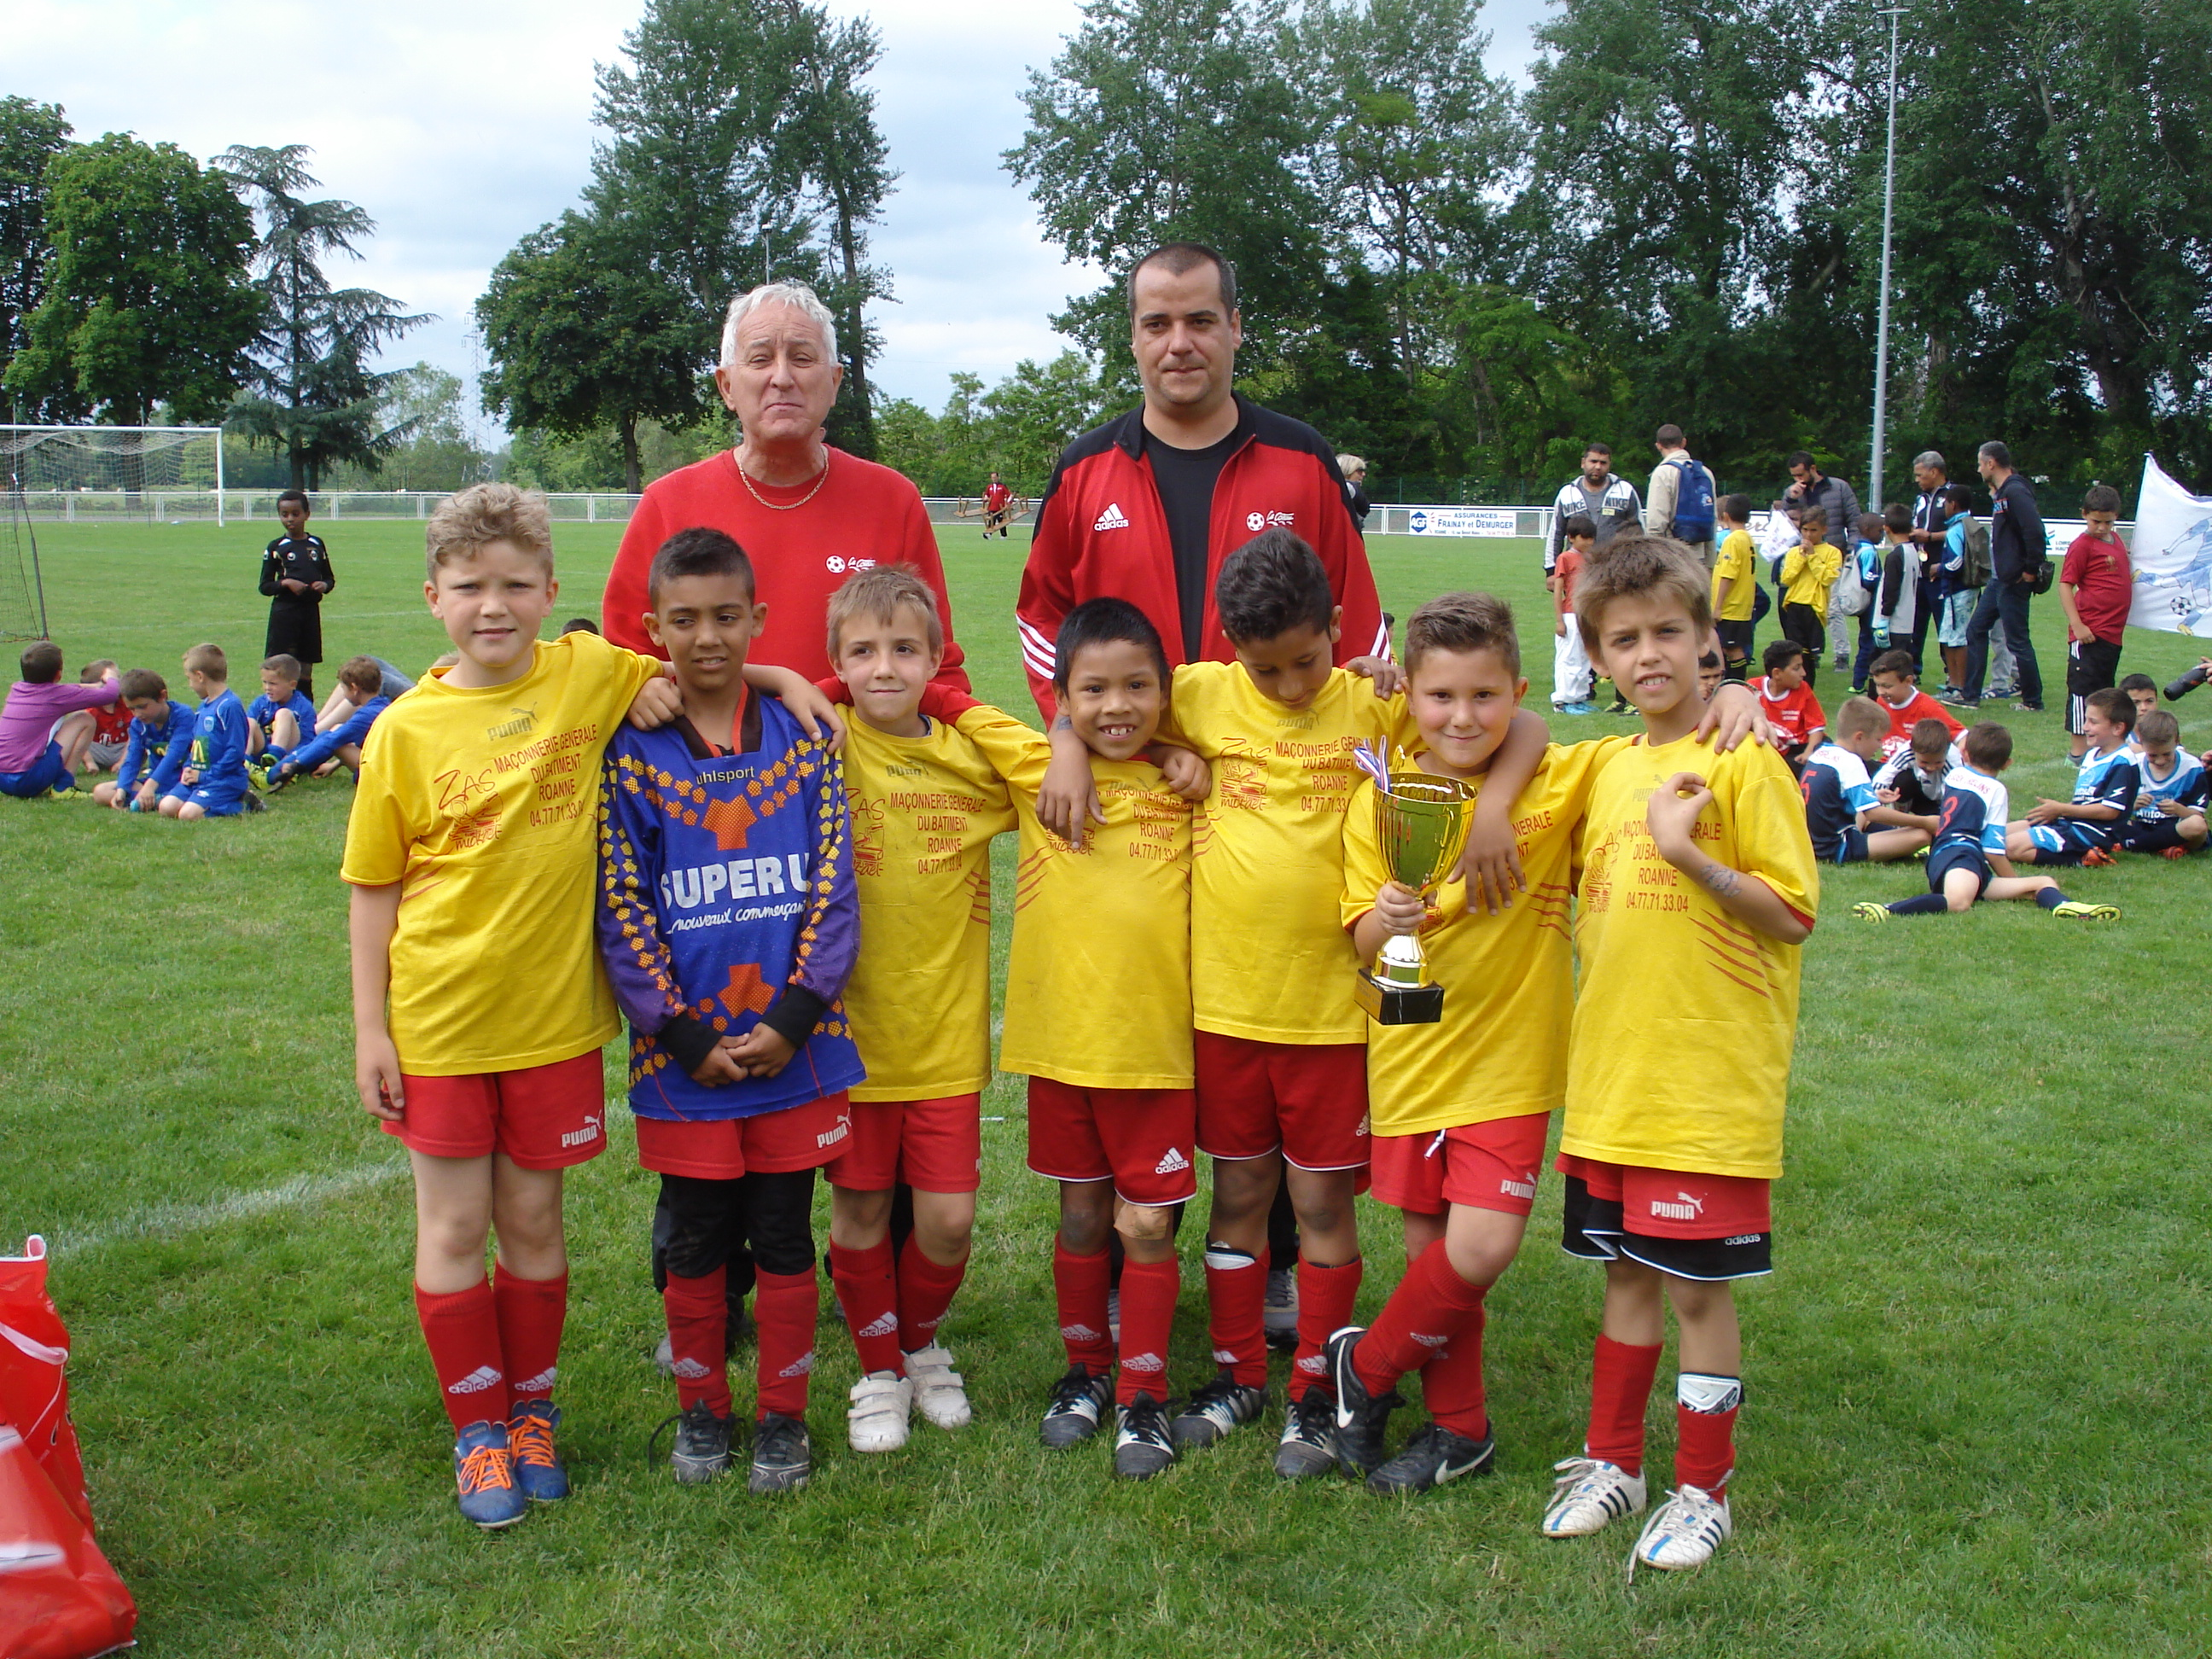 tournoi kid 39 s pierre broddes 2016 olympique le coteau. Black Bedroom Furniture Sets. Home Design Ideas